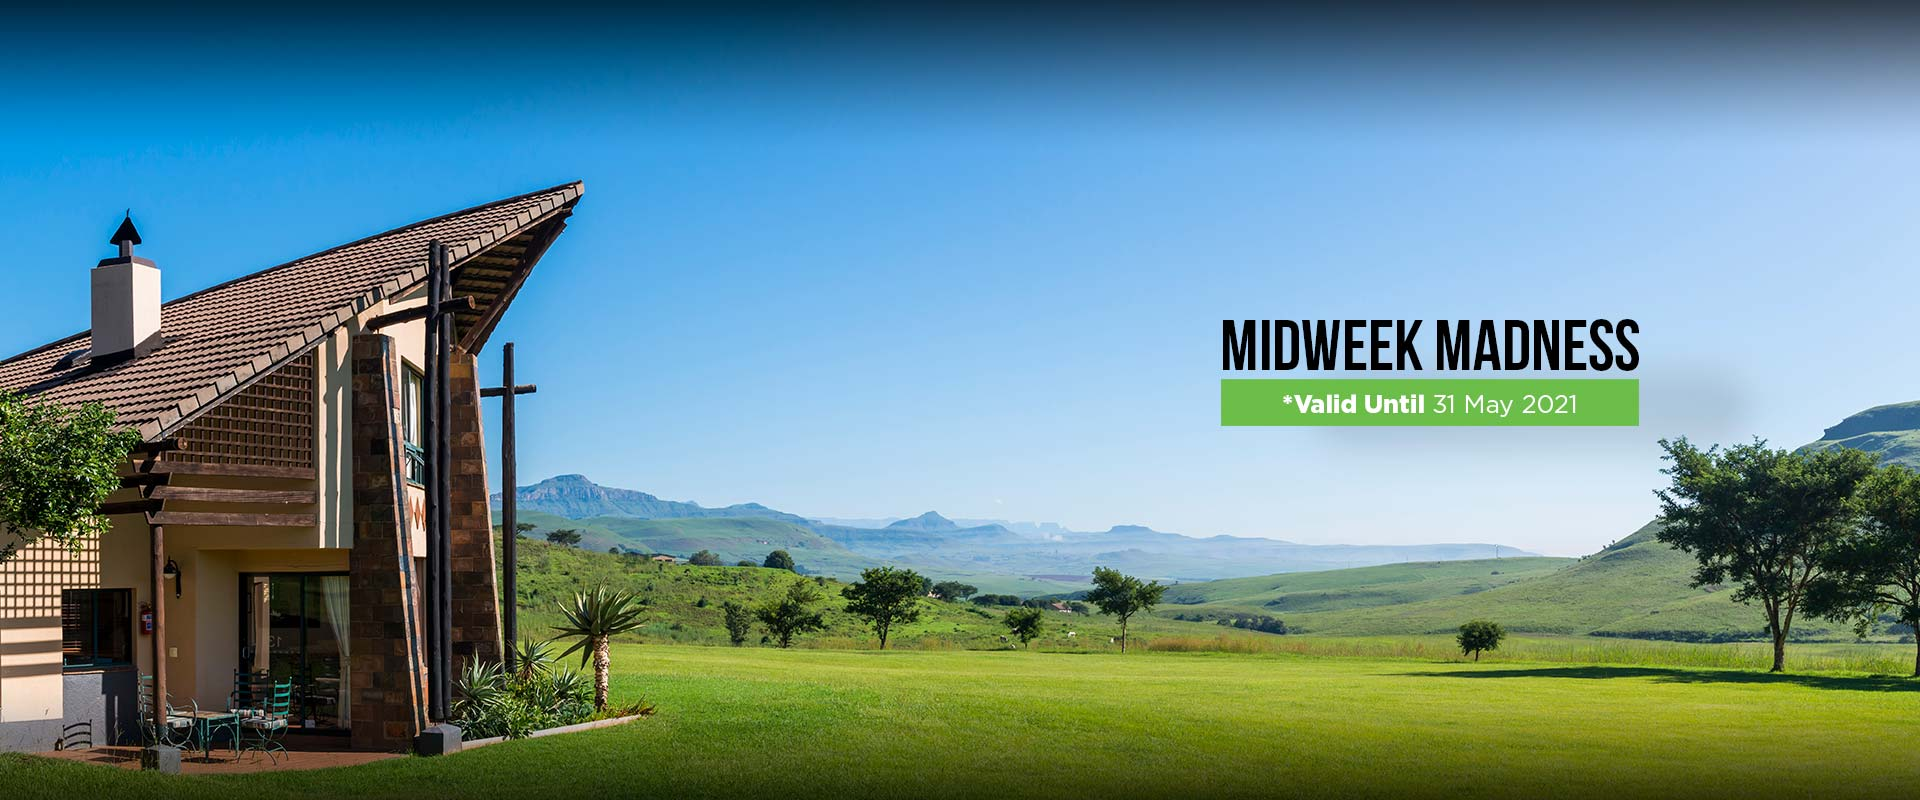 Midweek-Madness-1920x800-1